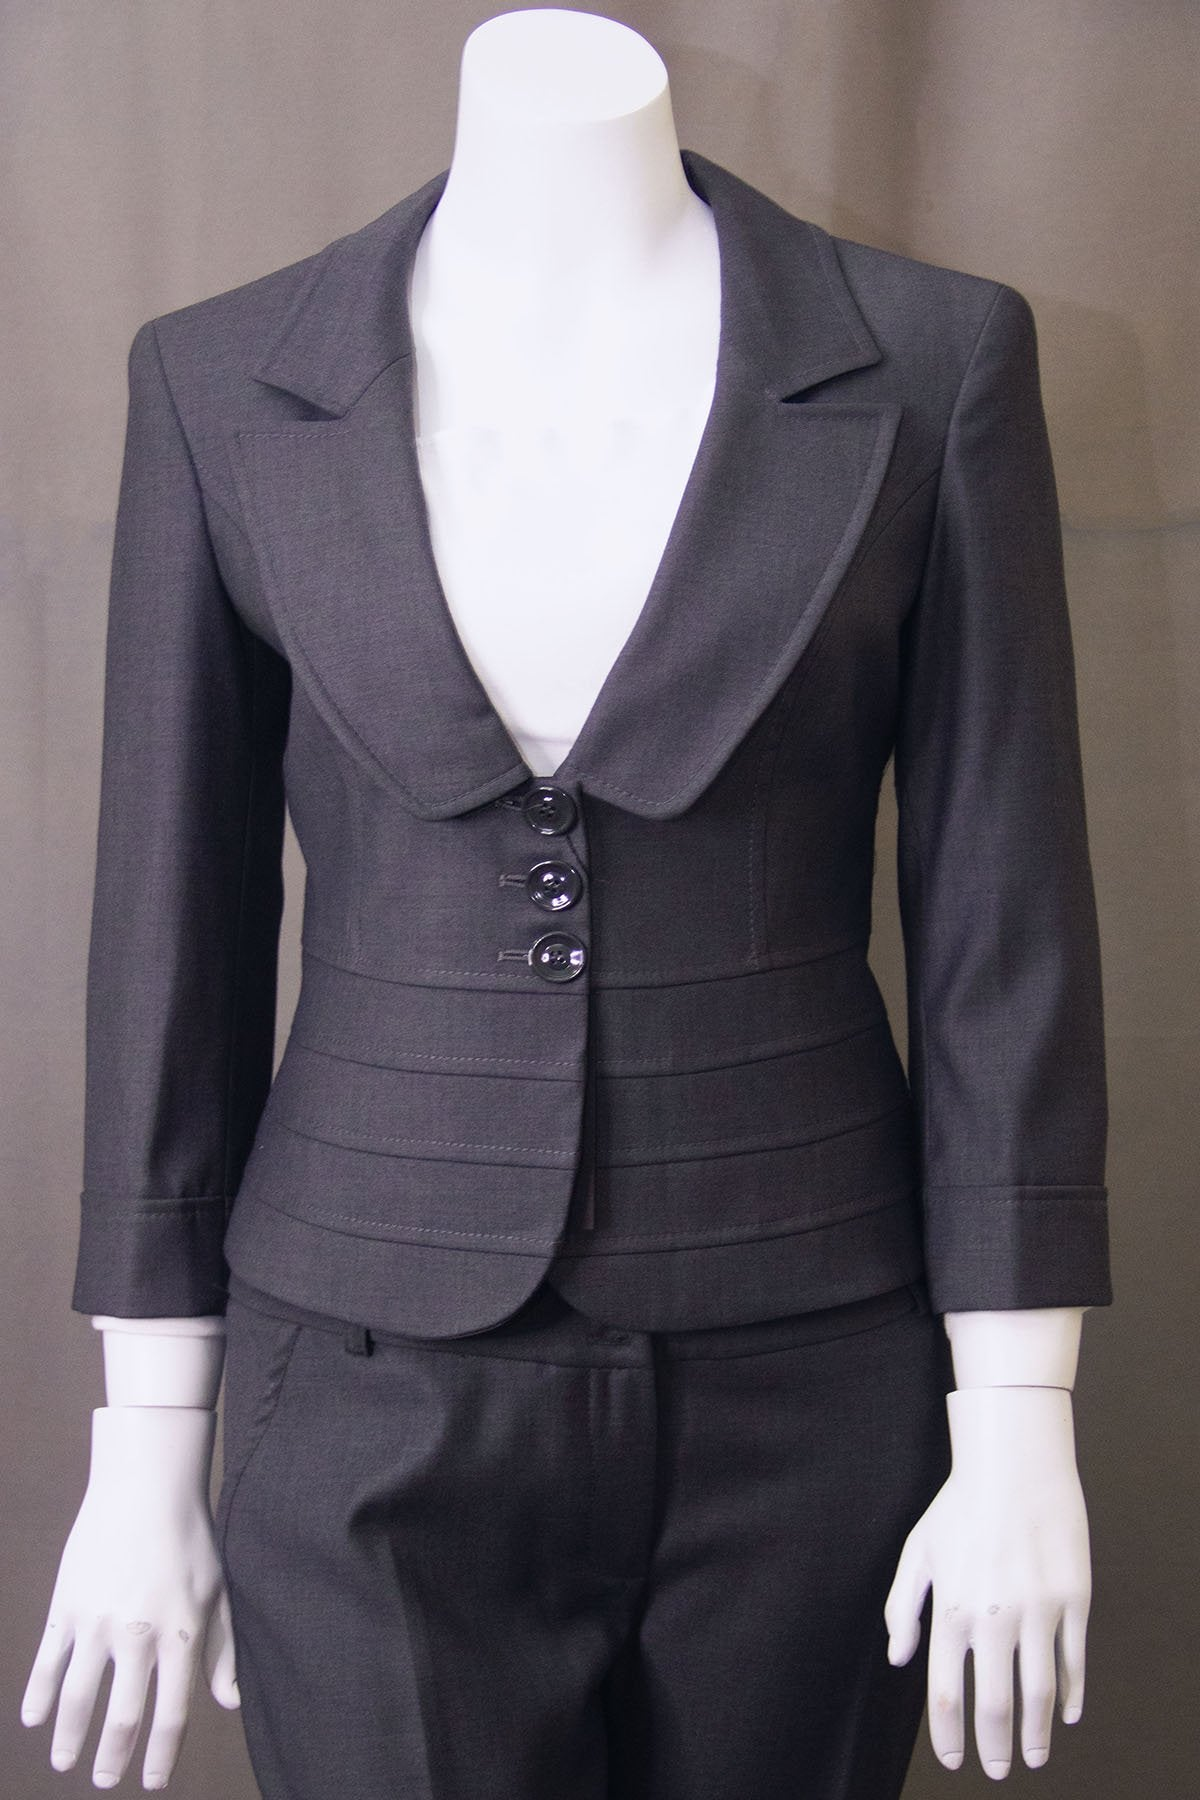 LADIES SUIT GREY BUTIK DAYI TURKEY